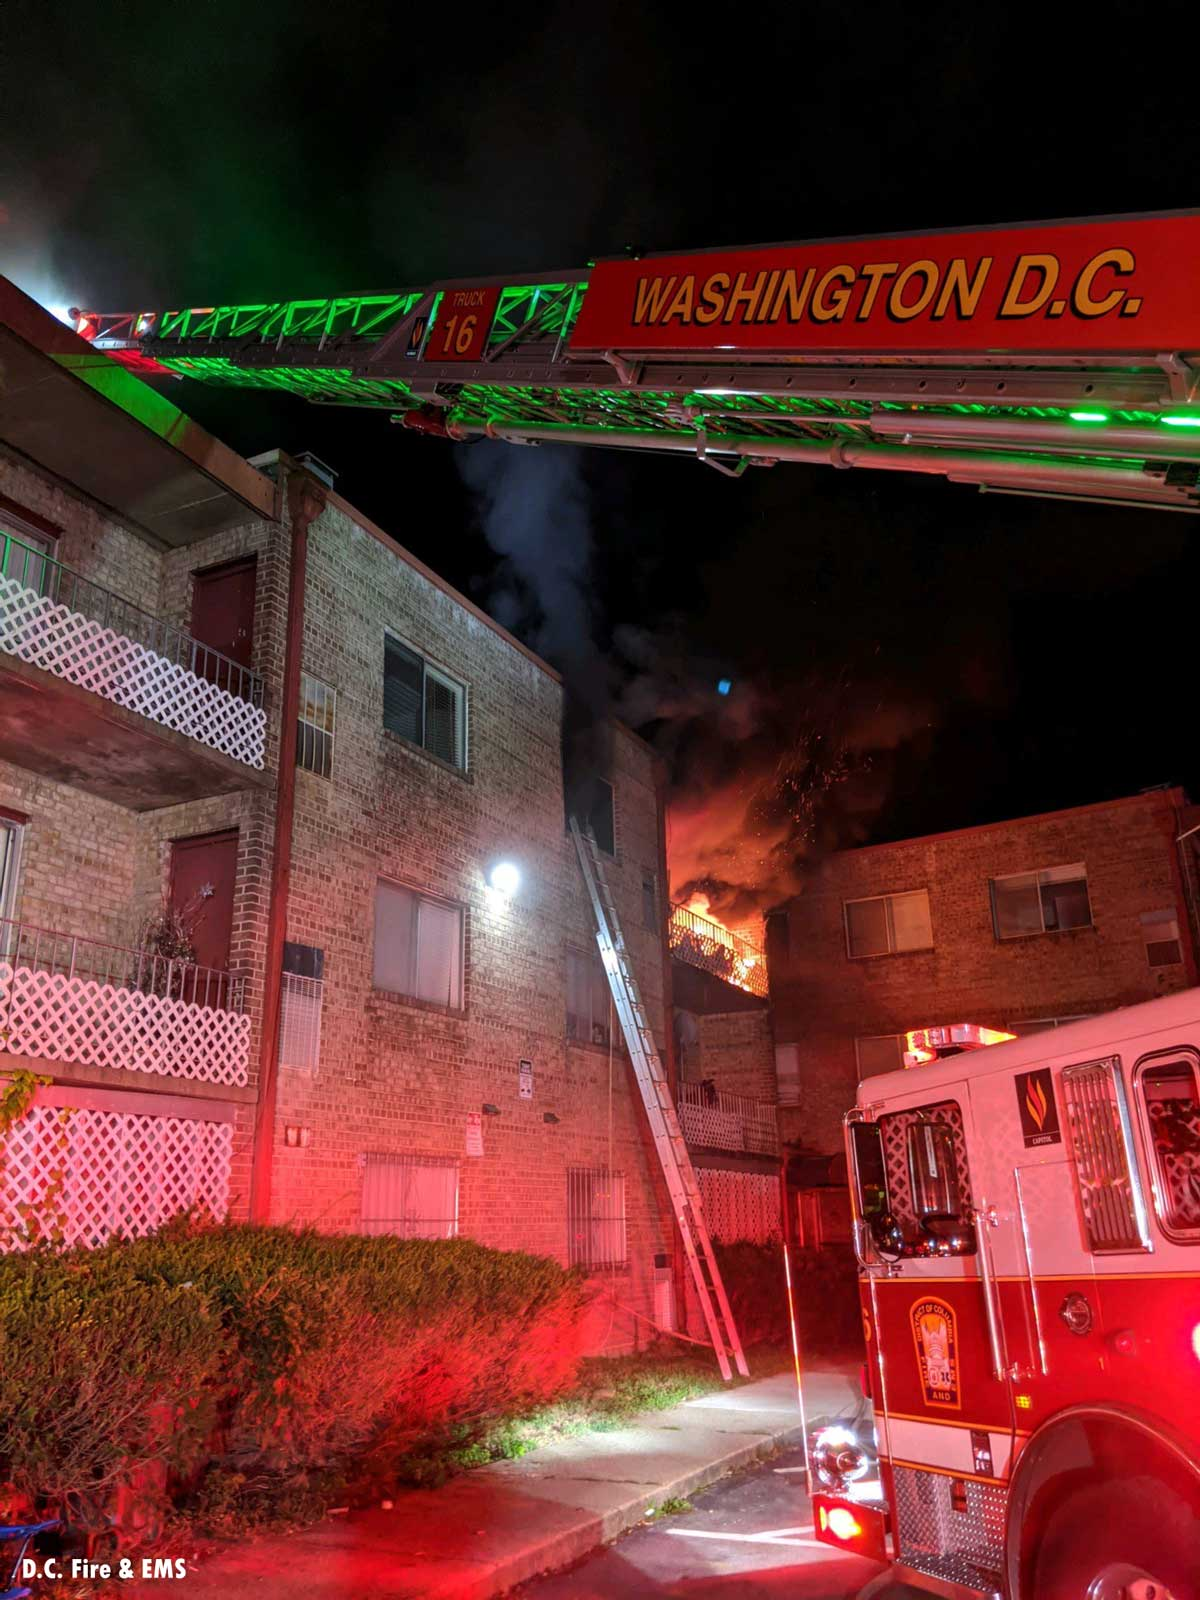 Aerial device and fire showing at D.C. apartment fire